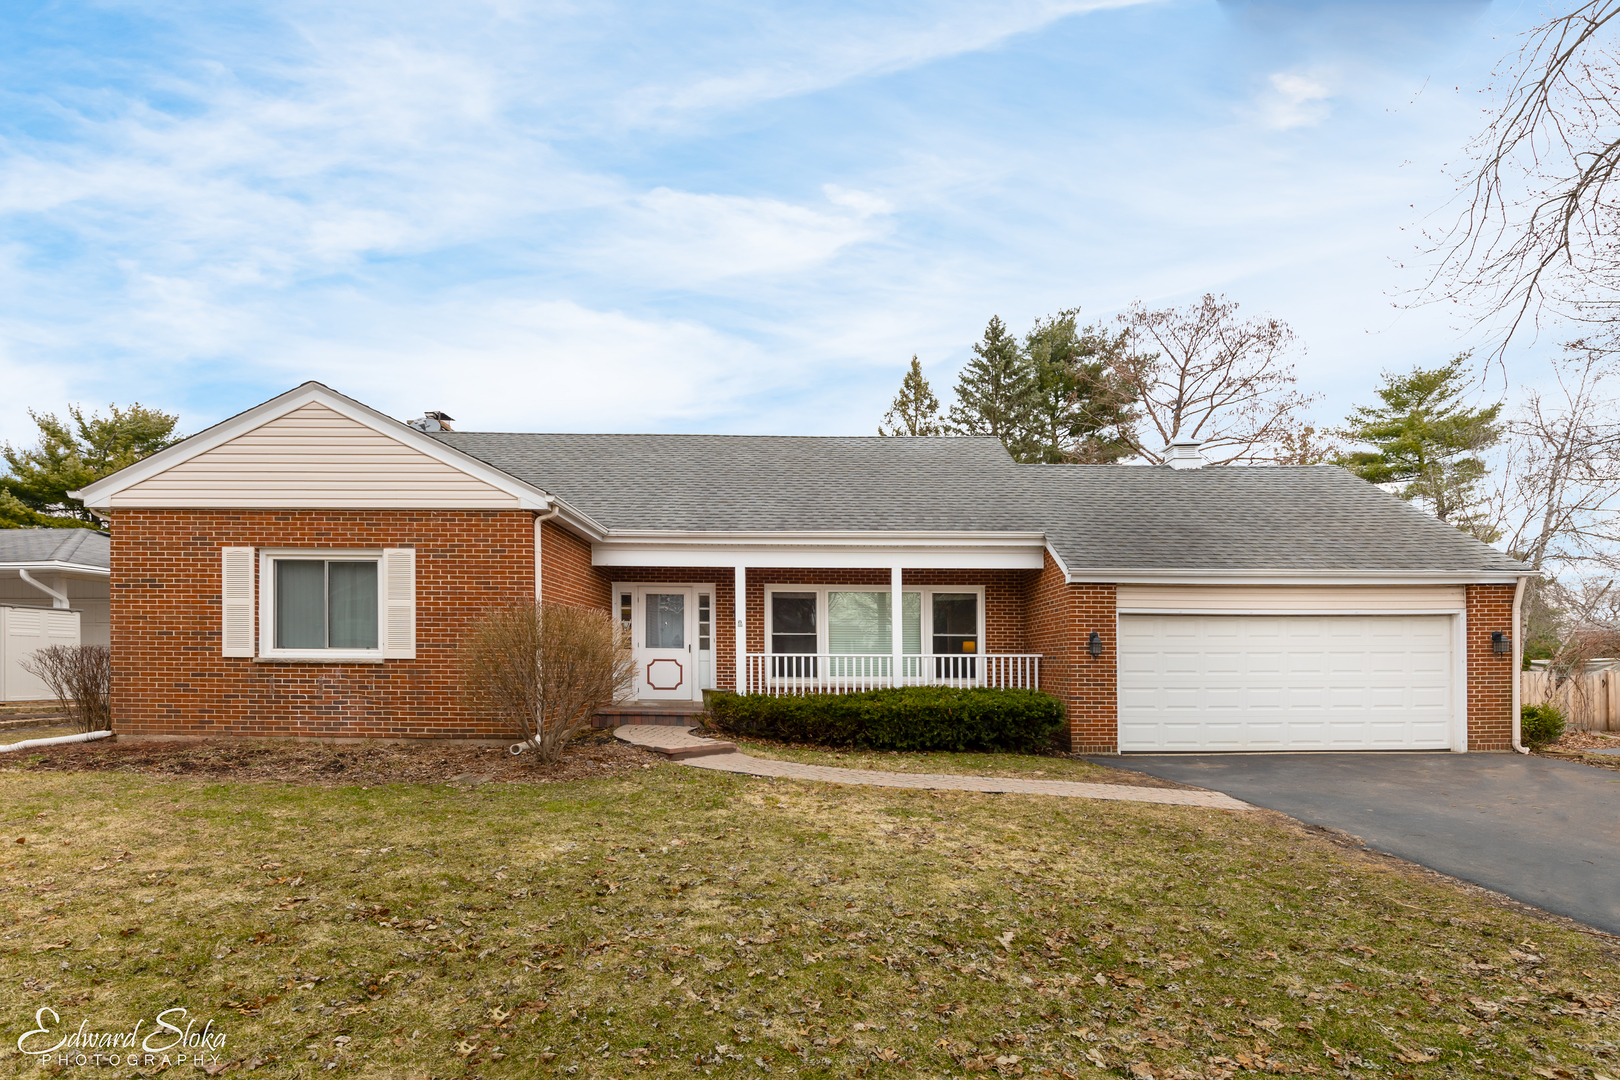 Photo for 517 Berriedale Drive, CARY, IL 60013 (MLS # 10331998)